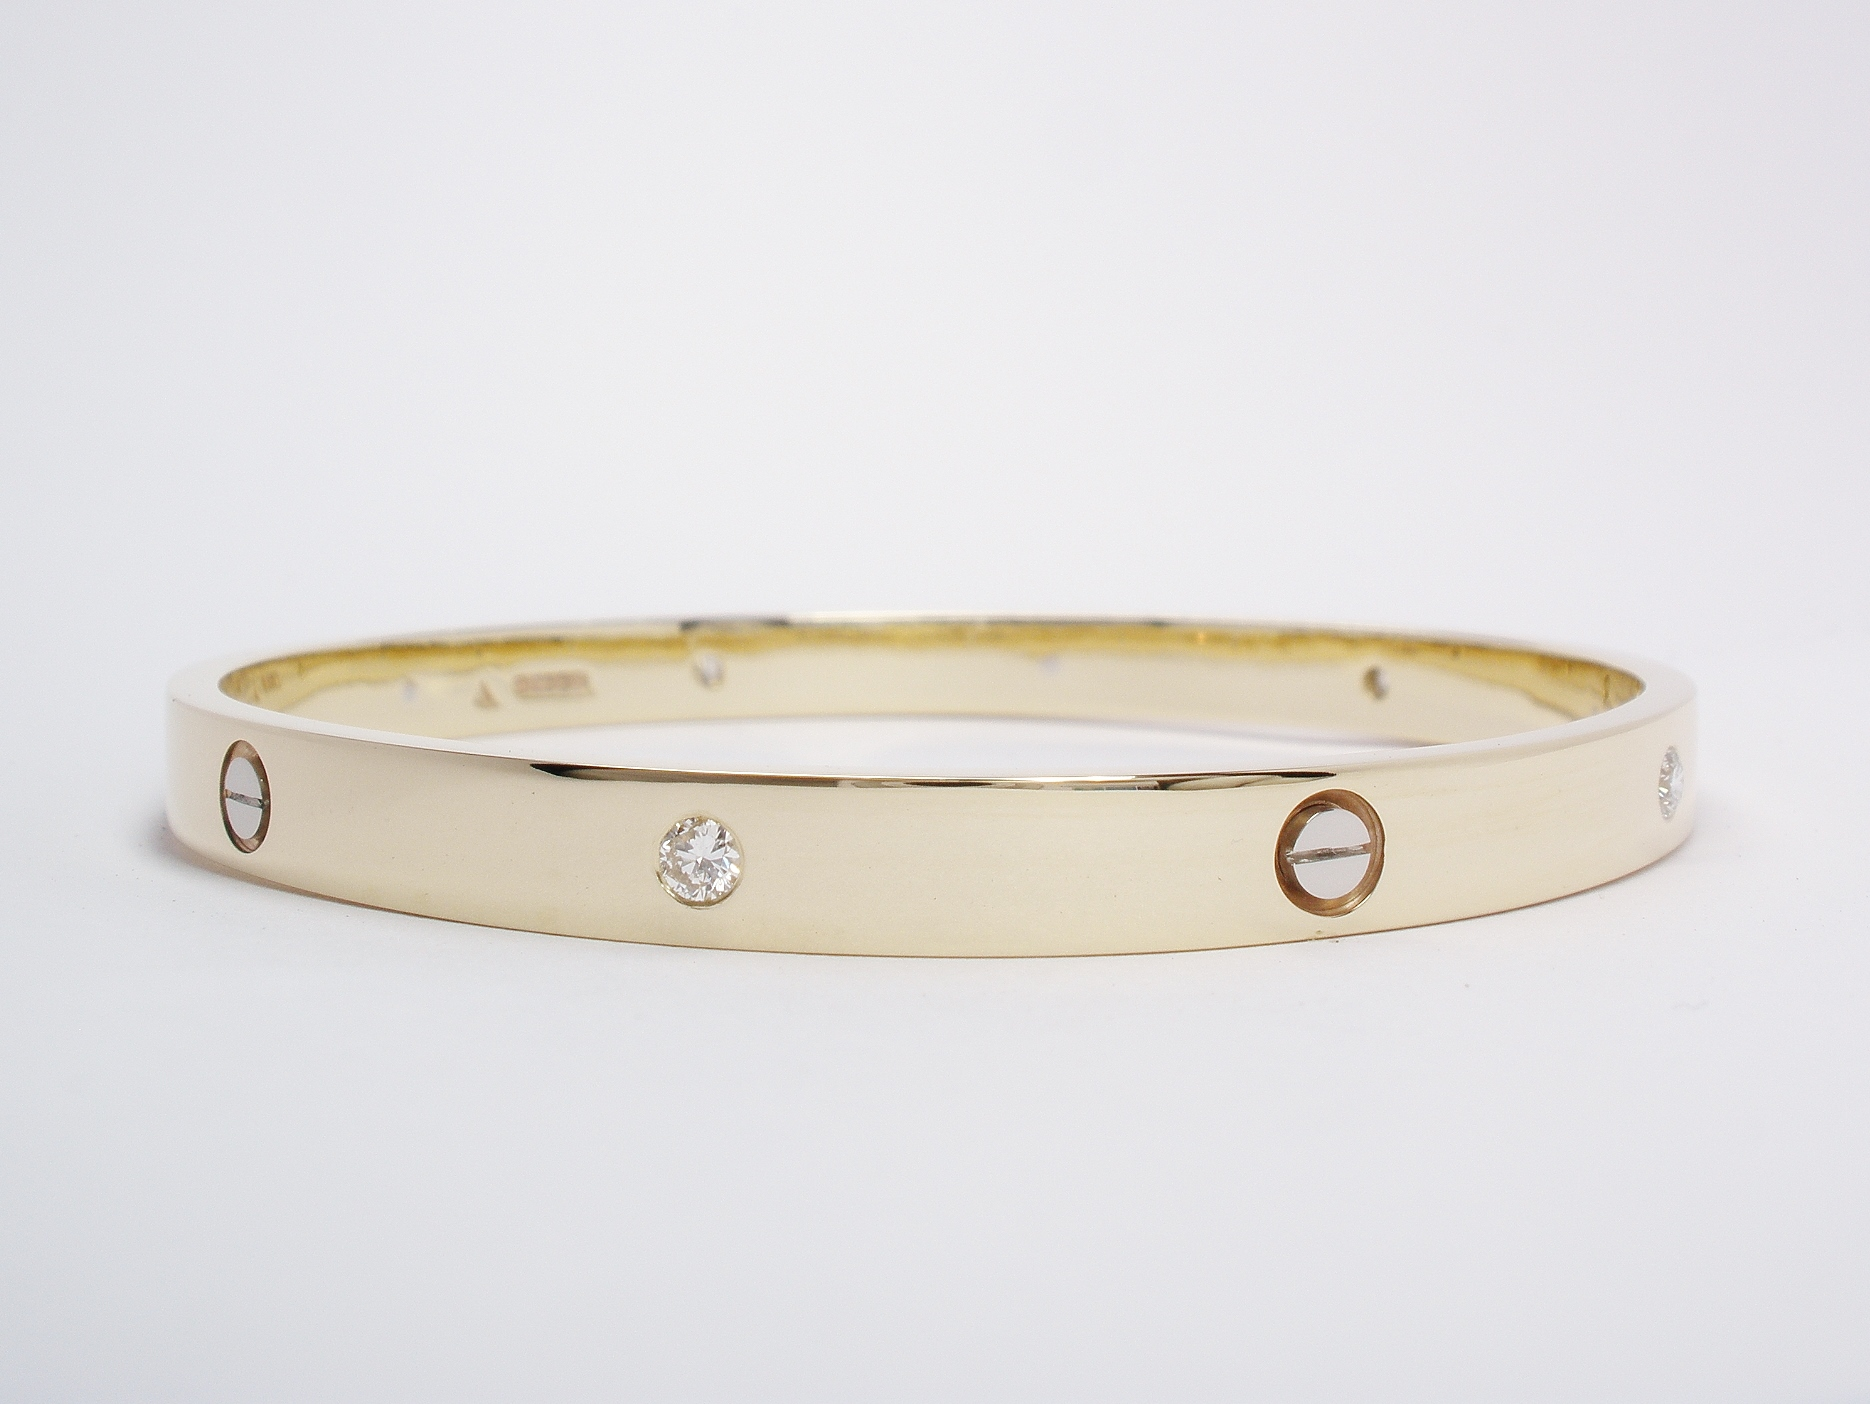 9ct yellow gold solid bangle with 5 round brilliant cut diamonds flush set & 5 palladium screw heads inlayed.